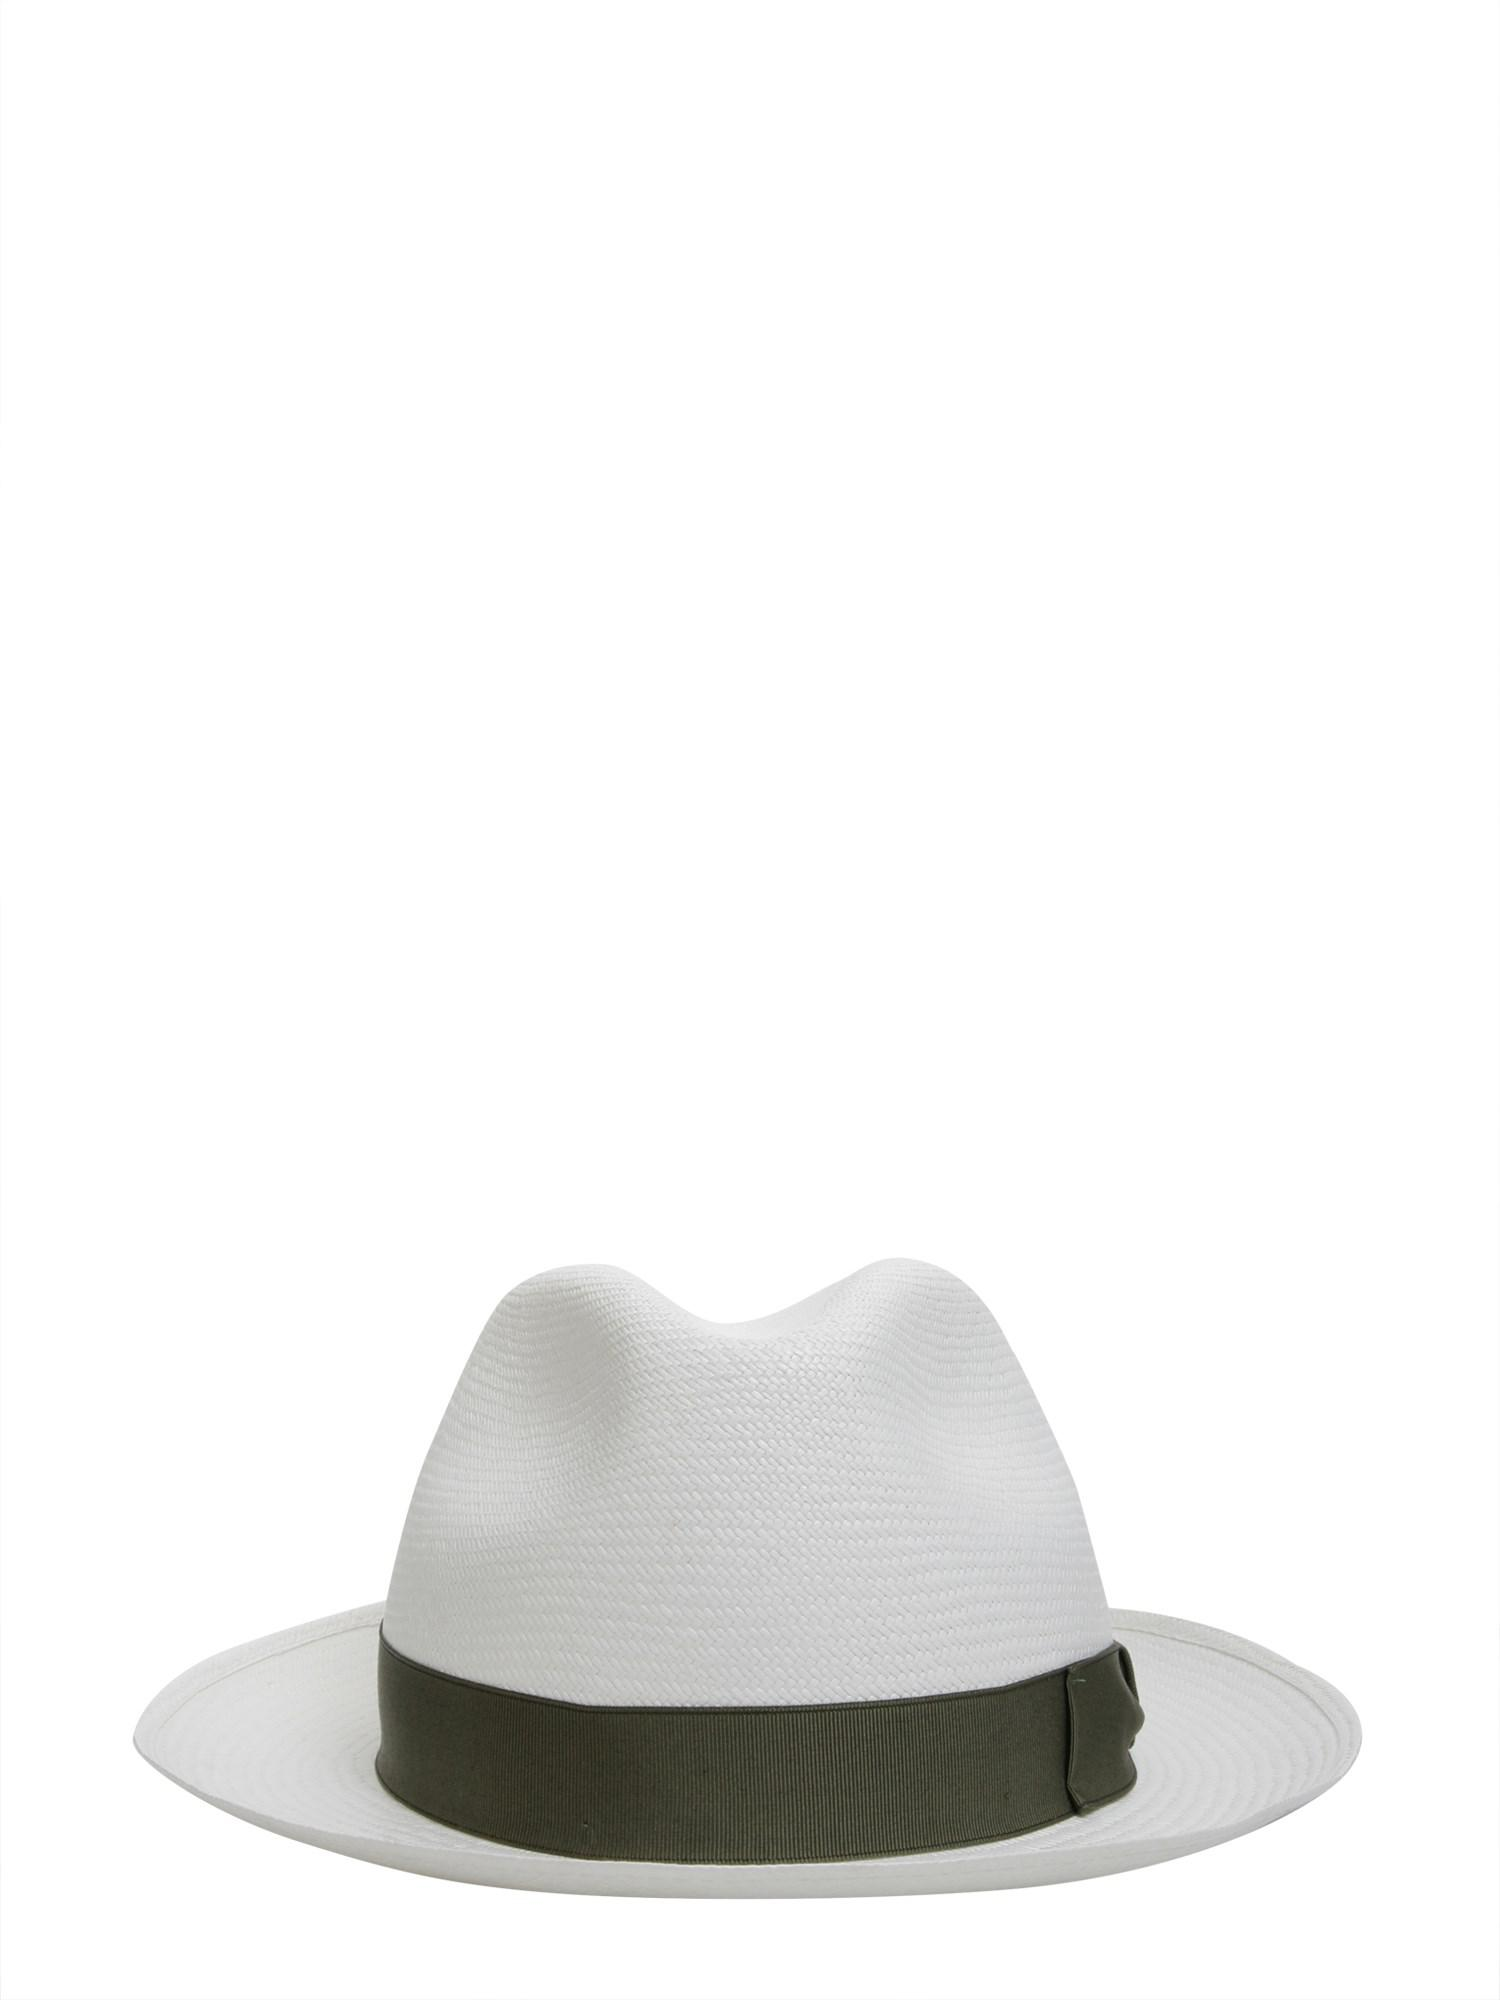 Borsalino - White Cappello Panama Fine Tesa Media In Paglia for Men - Lyst.  View fullscreen 00a553abdf1a